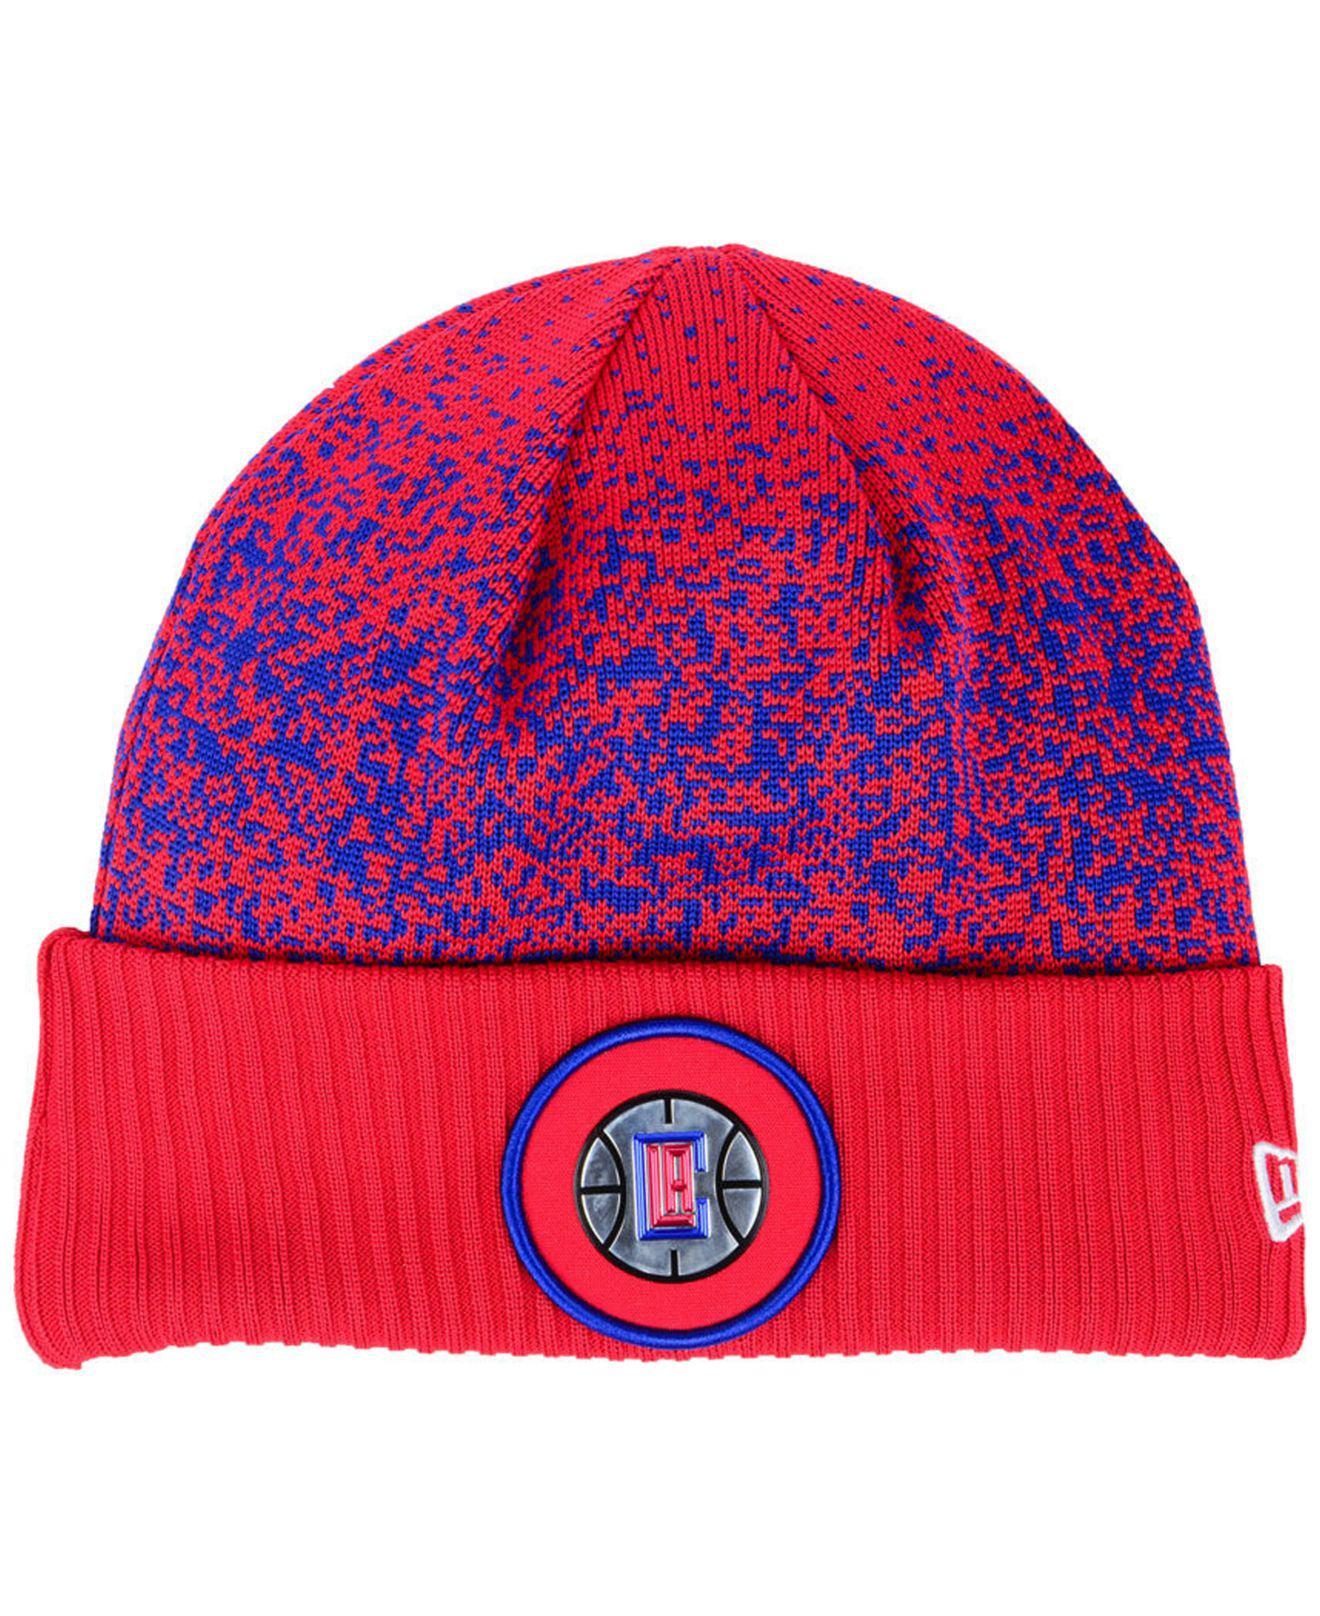 122d3218dd8 Lyst - KTZ On Court Collection Cuff Knit Hat in Red for Men